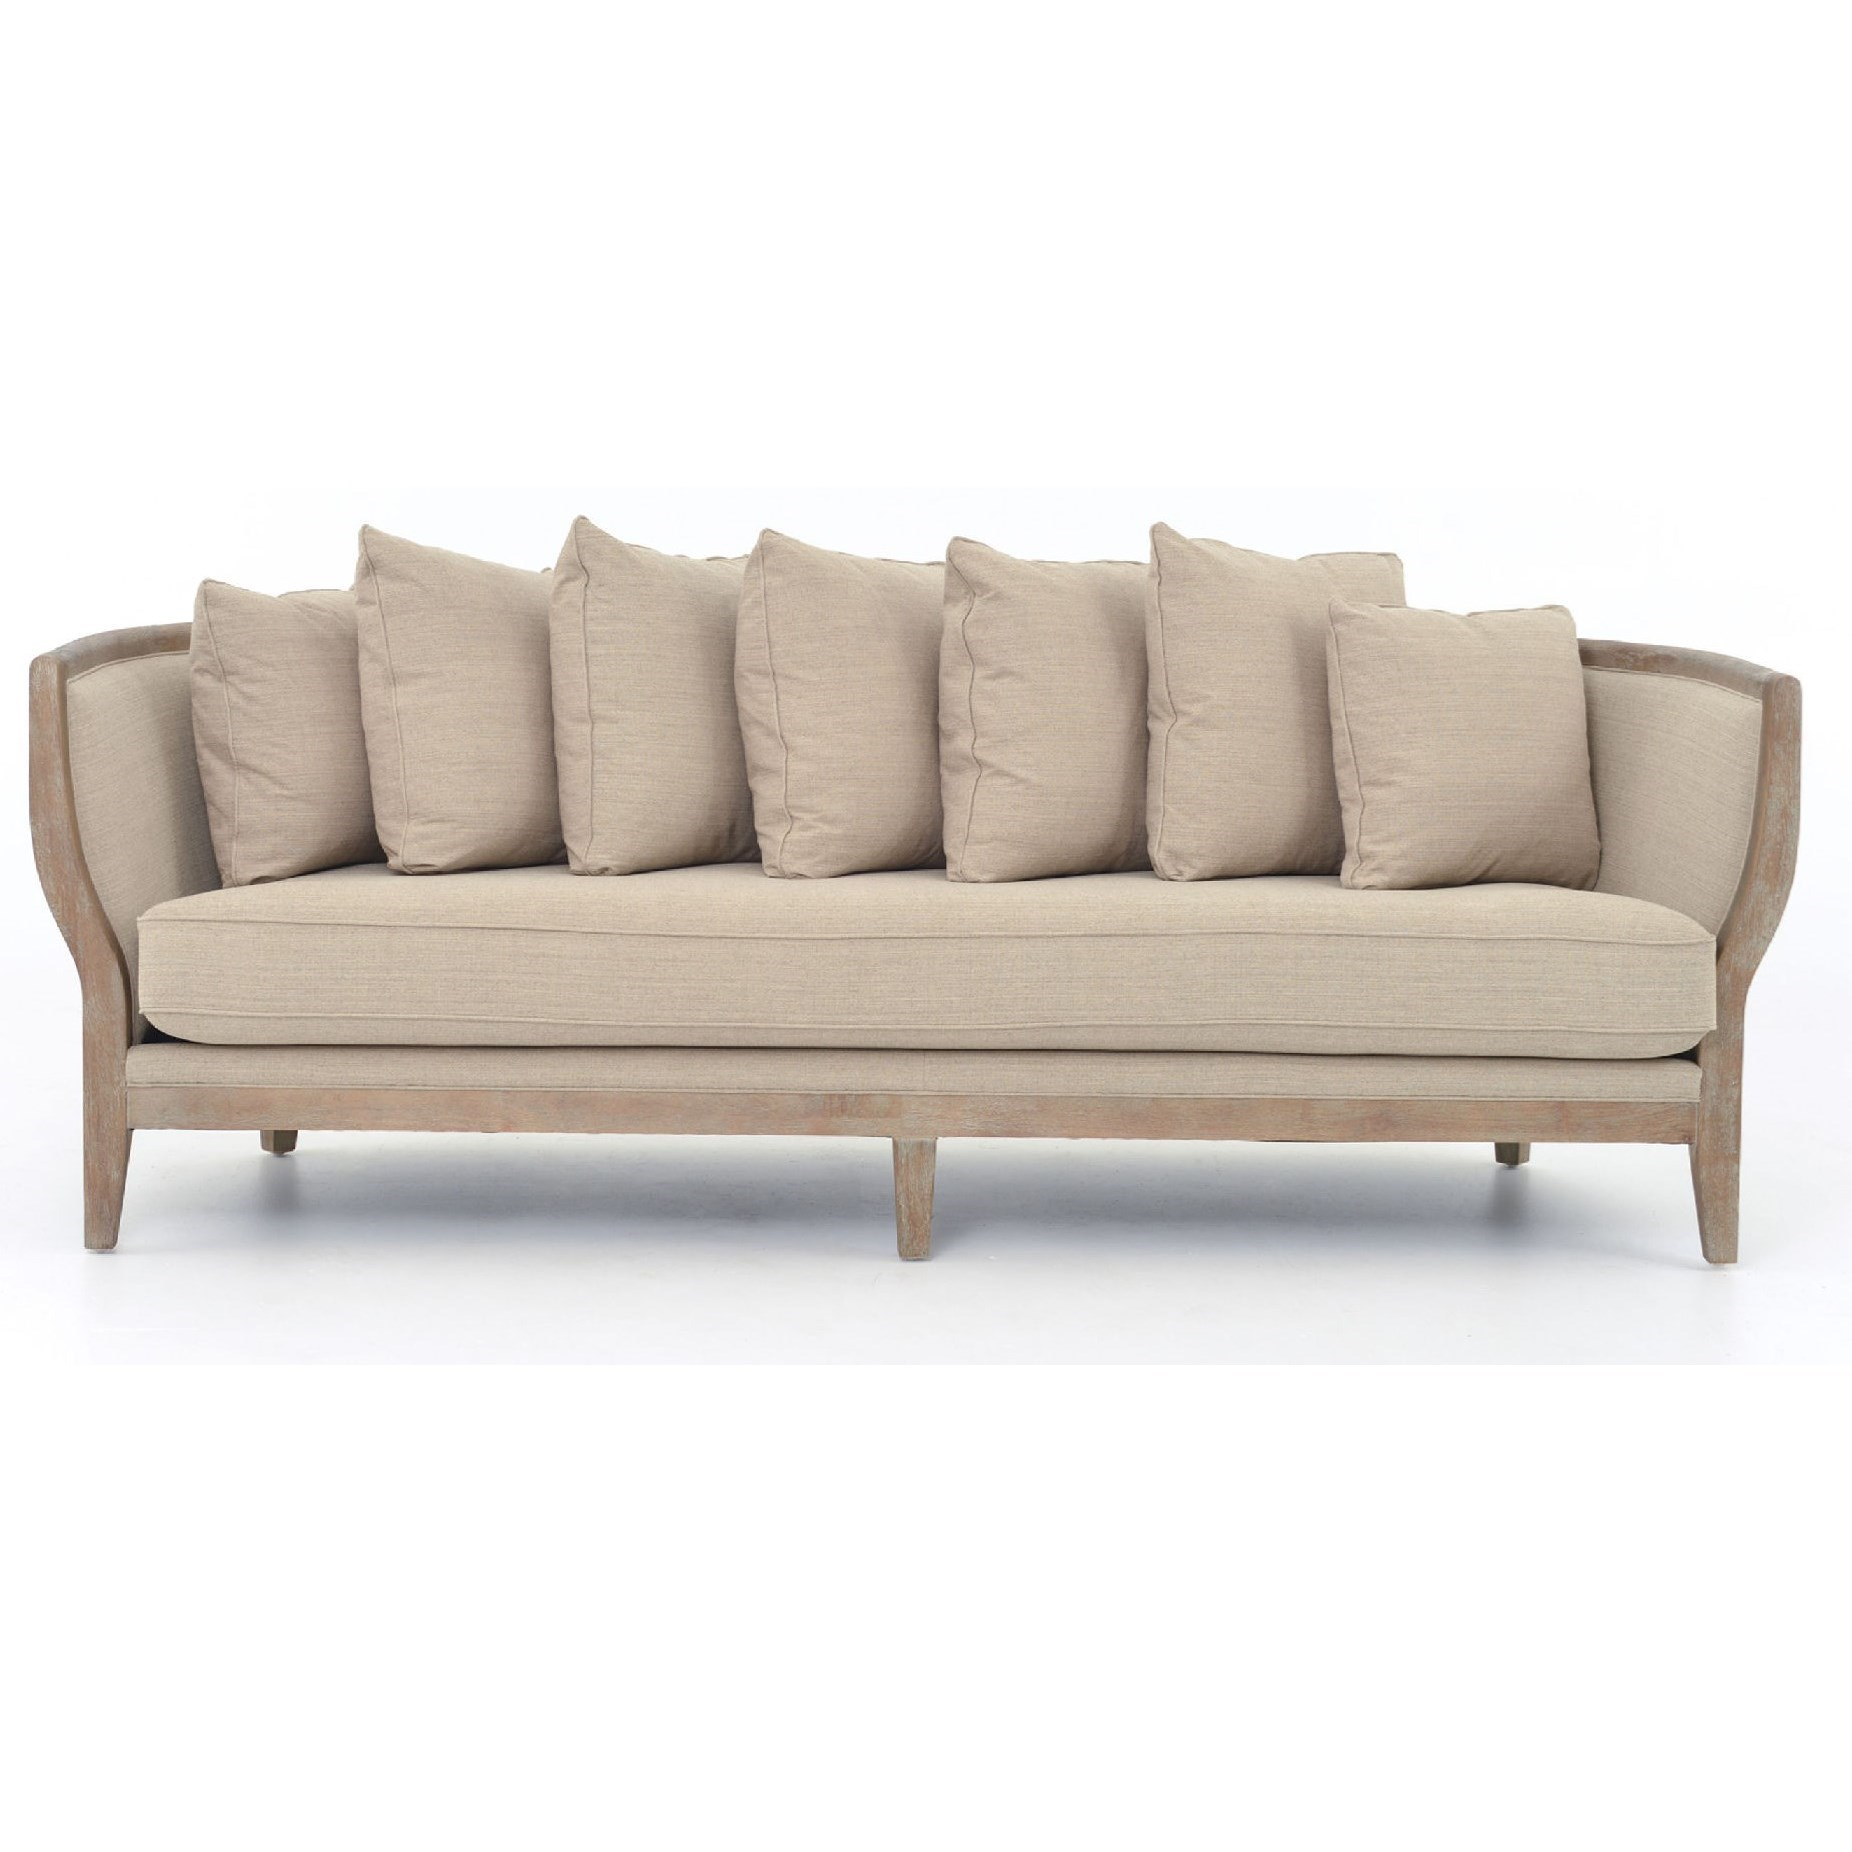 Four Hands Kensington Hayes Sofa with Hyde Clay Fabric - Item Number: CMIC-55Z-030